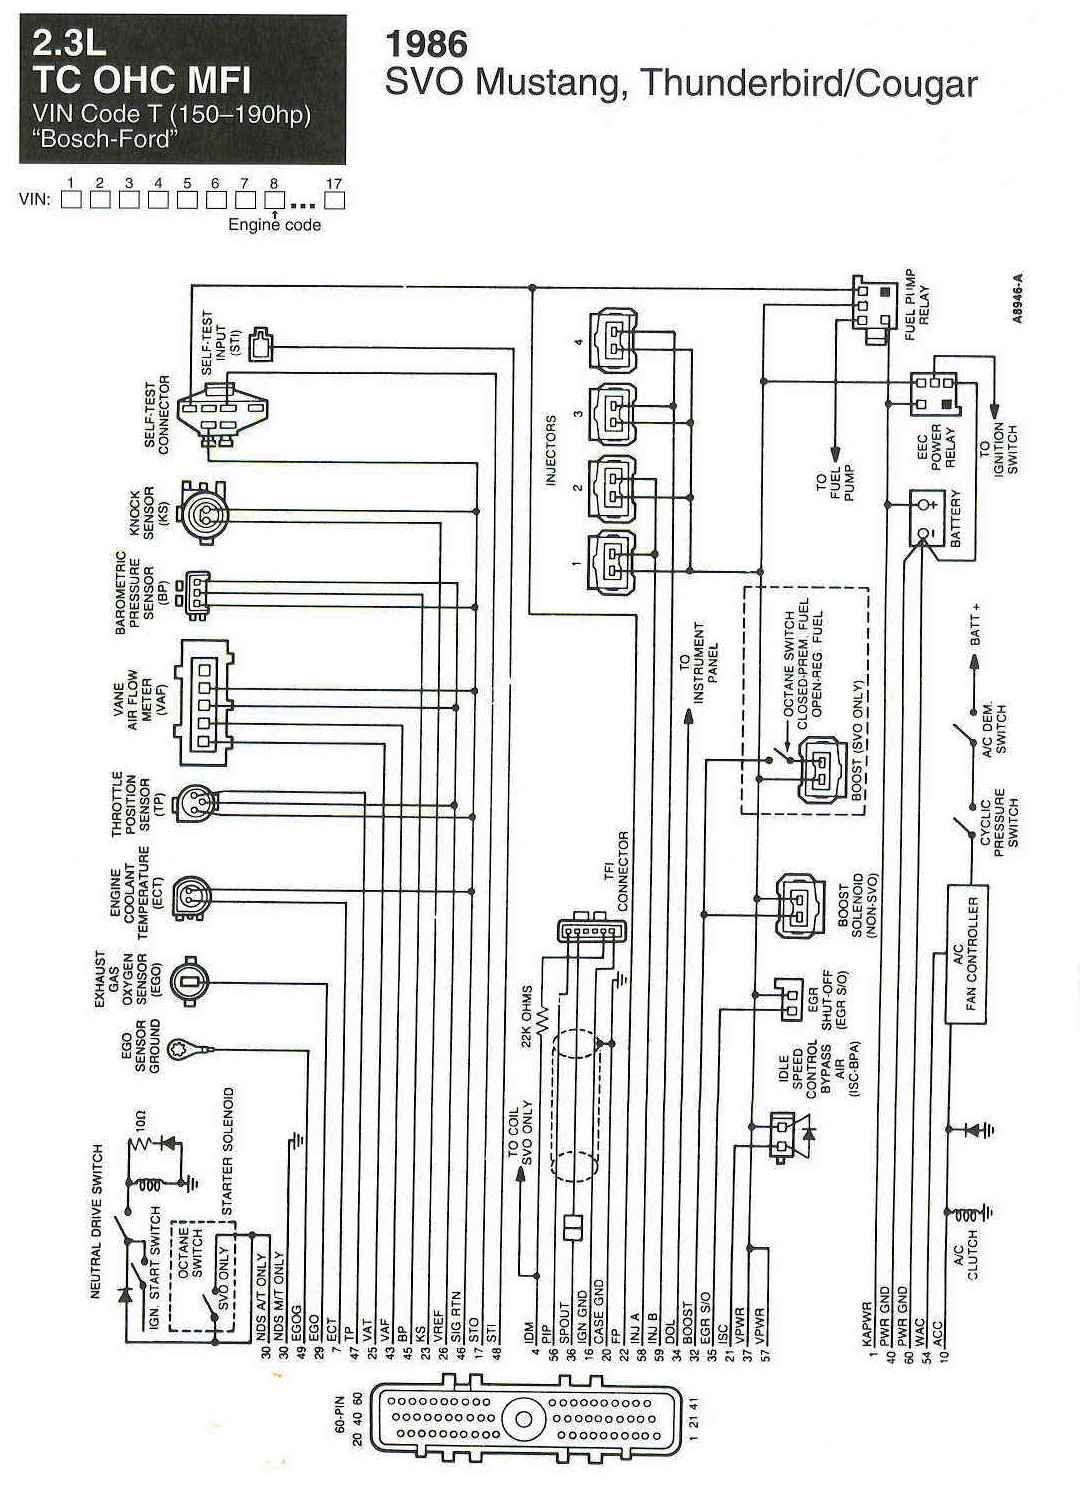 84 ford thunderbird wiring diagram great design of wiring diagram. Black Bedroom Furniture Sets. Home Design Ideas